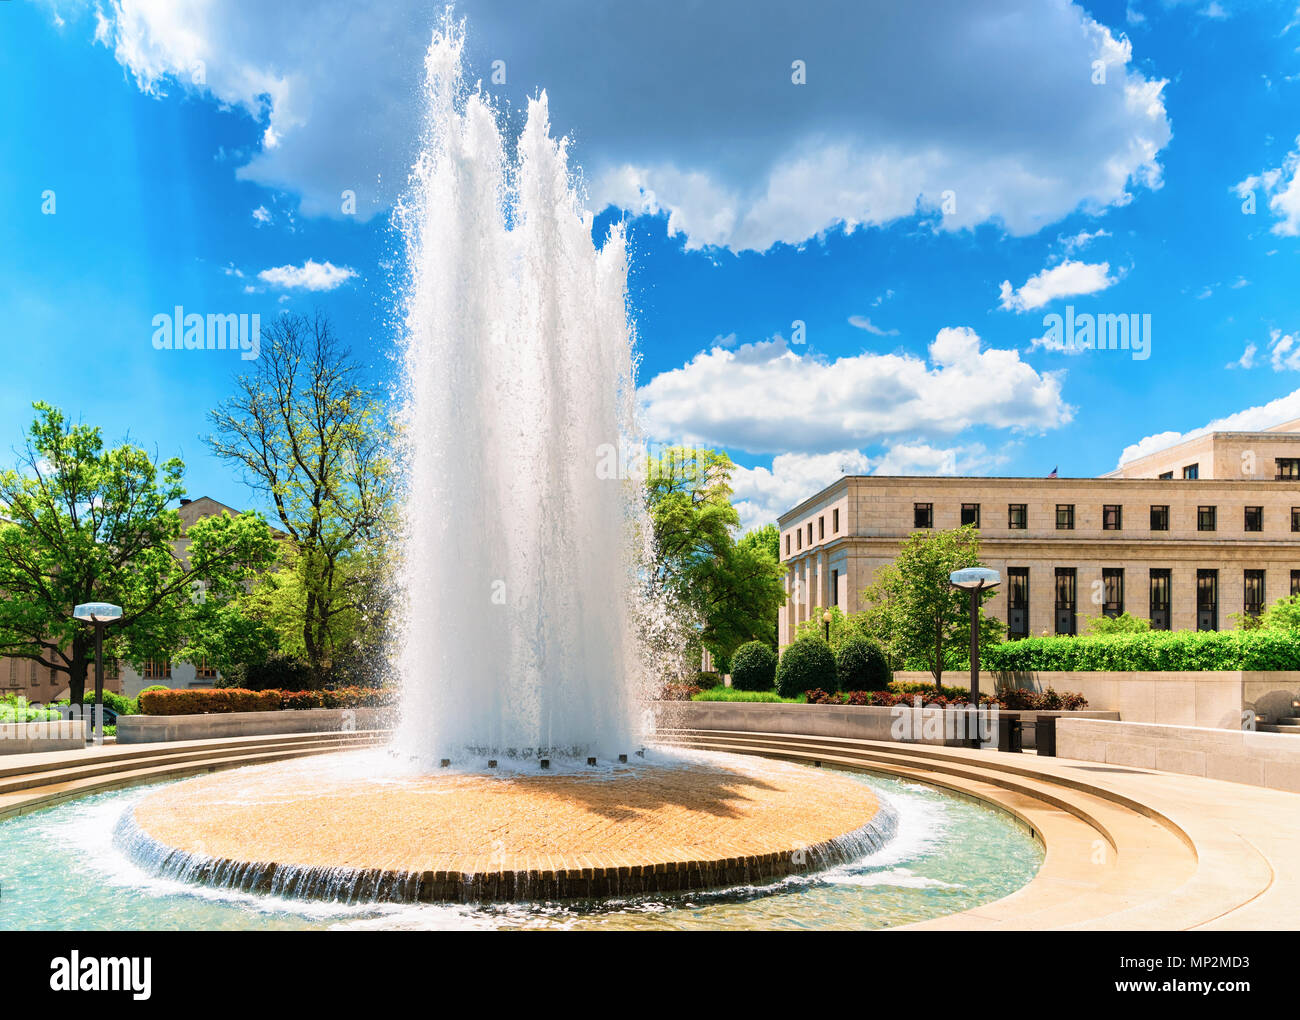 Fountain in Robert Latham Owen park in Washington D.C., USA. Robert Latham Owen was one of the first United States senators from the state Oklahoma. H Stock Photo